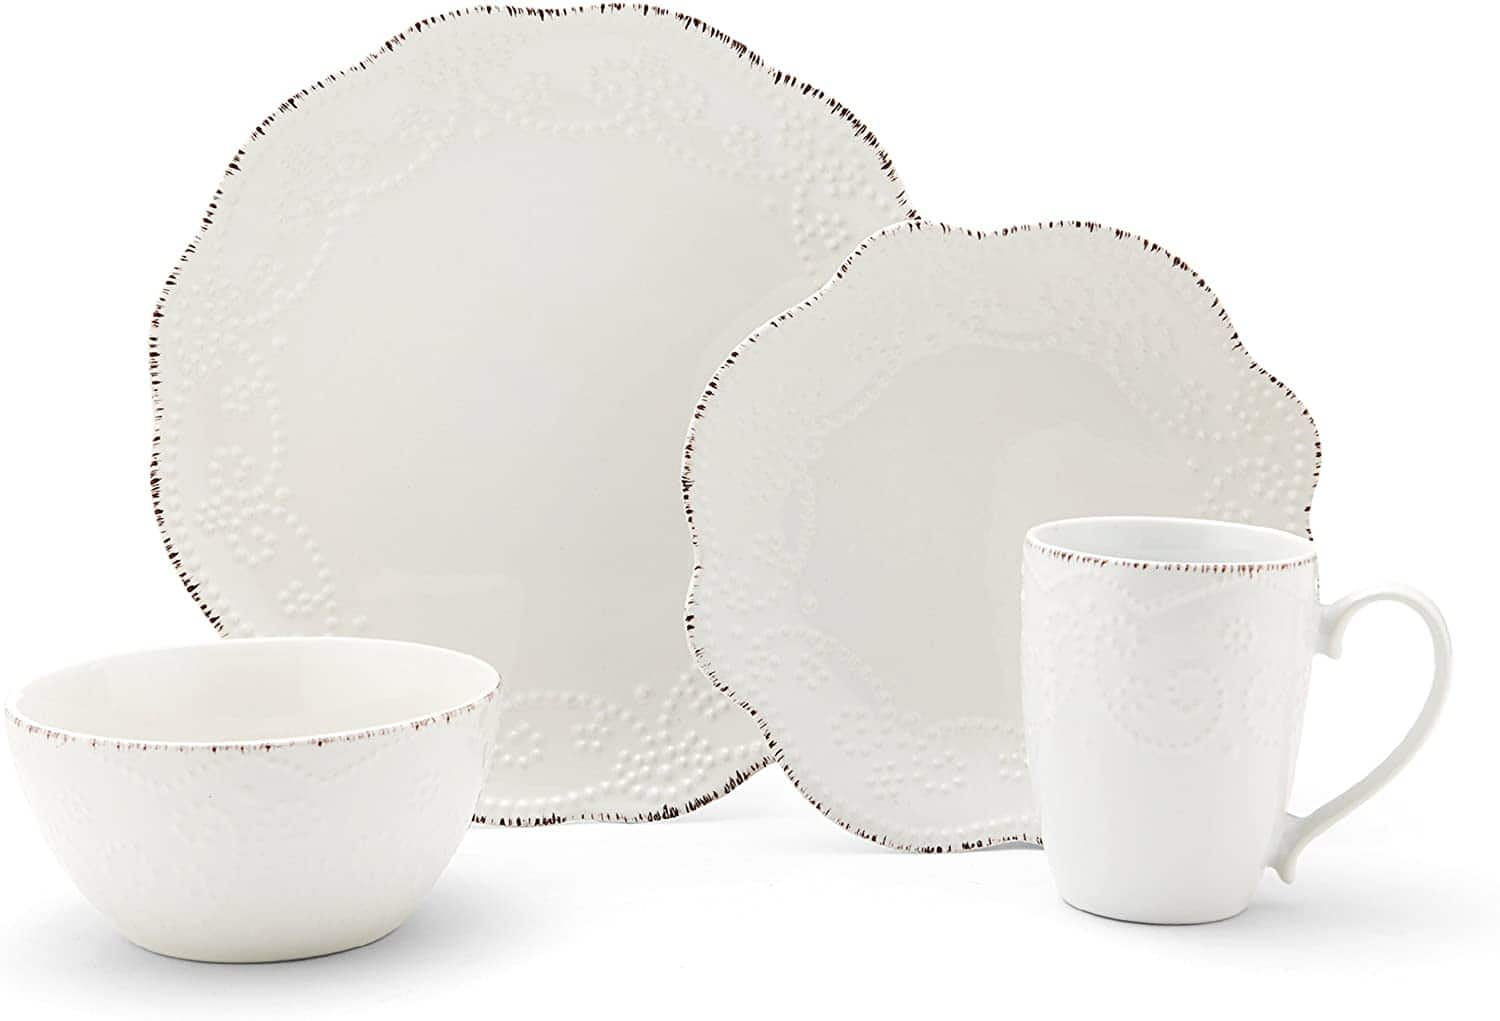 16-Piece Pfaltzgraff Everly Stoneware Dinnerware Set (Service for 4) $39.99 + Free Shipping ~ Macy's